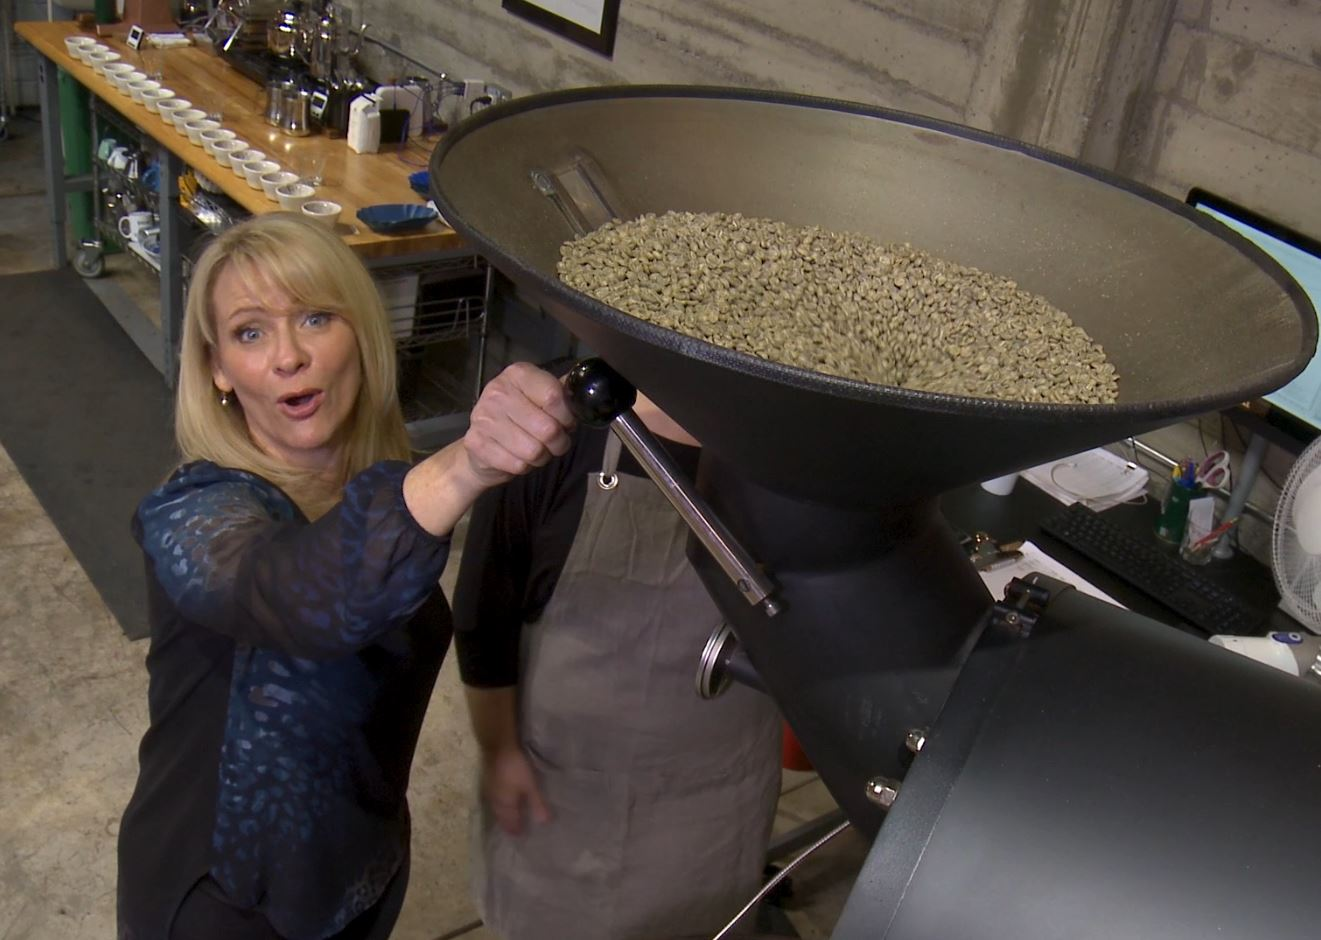 Grinding beans at Wrecking Ball Coffee Roasters